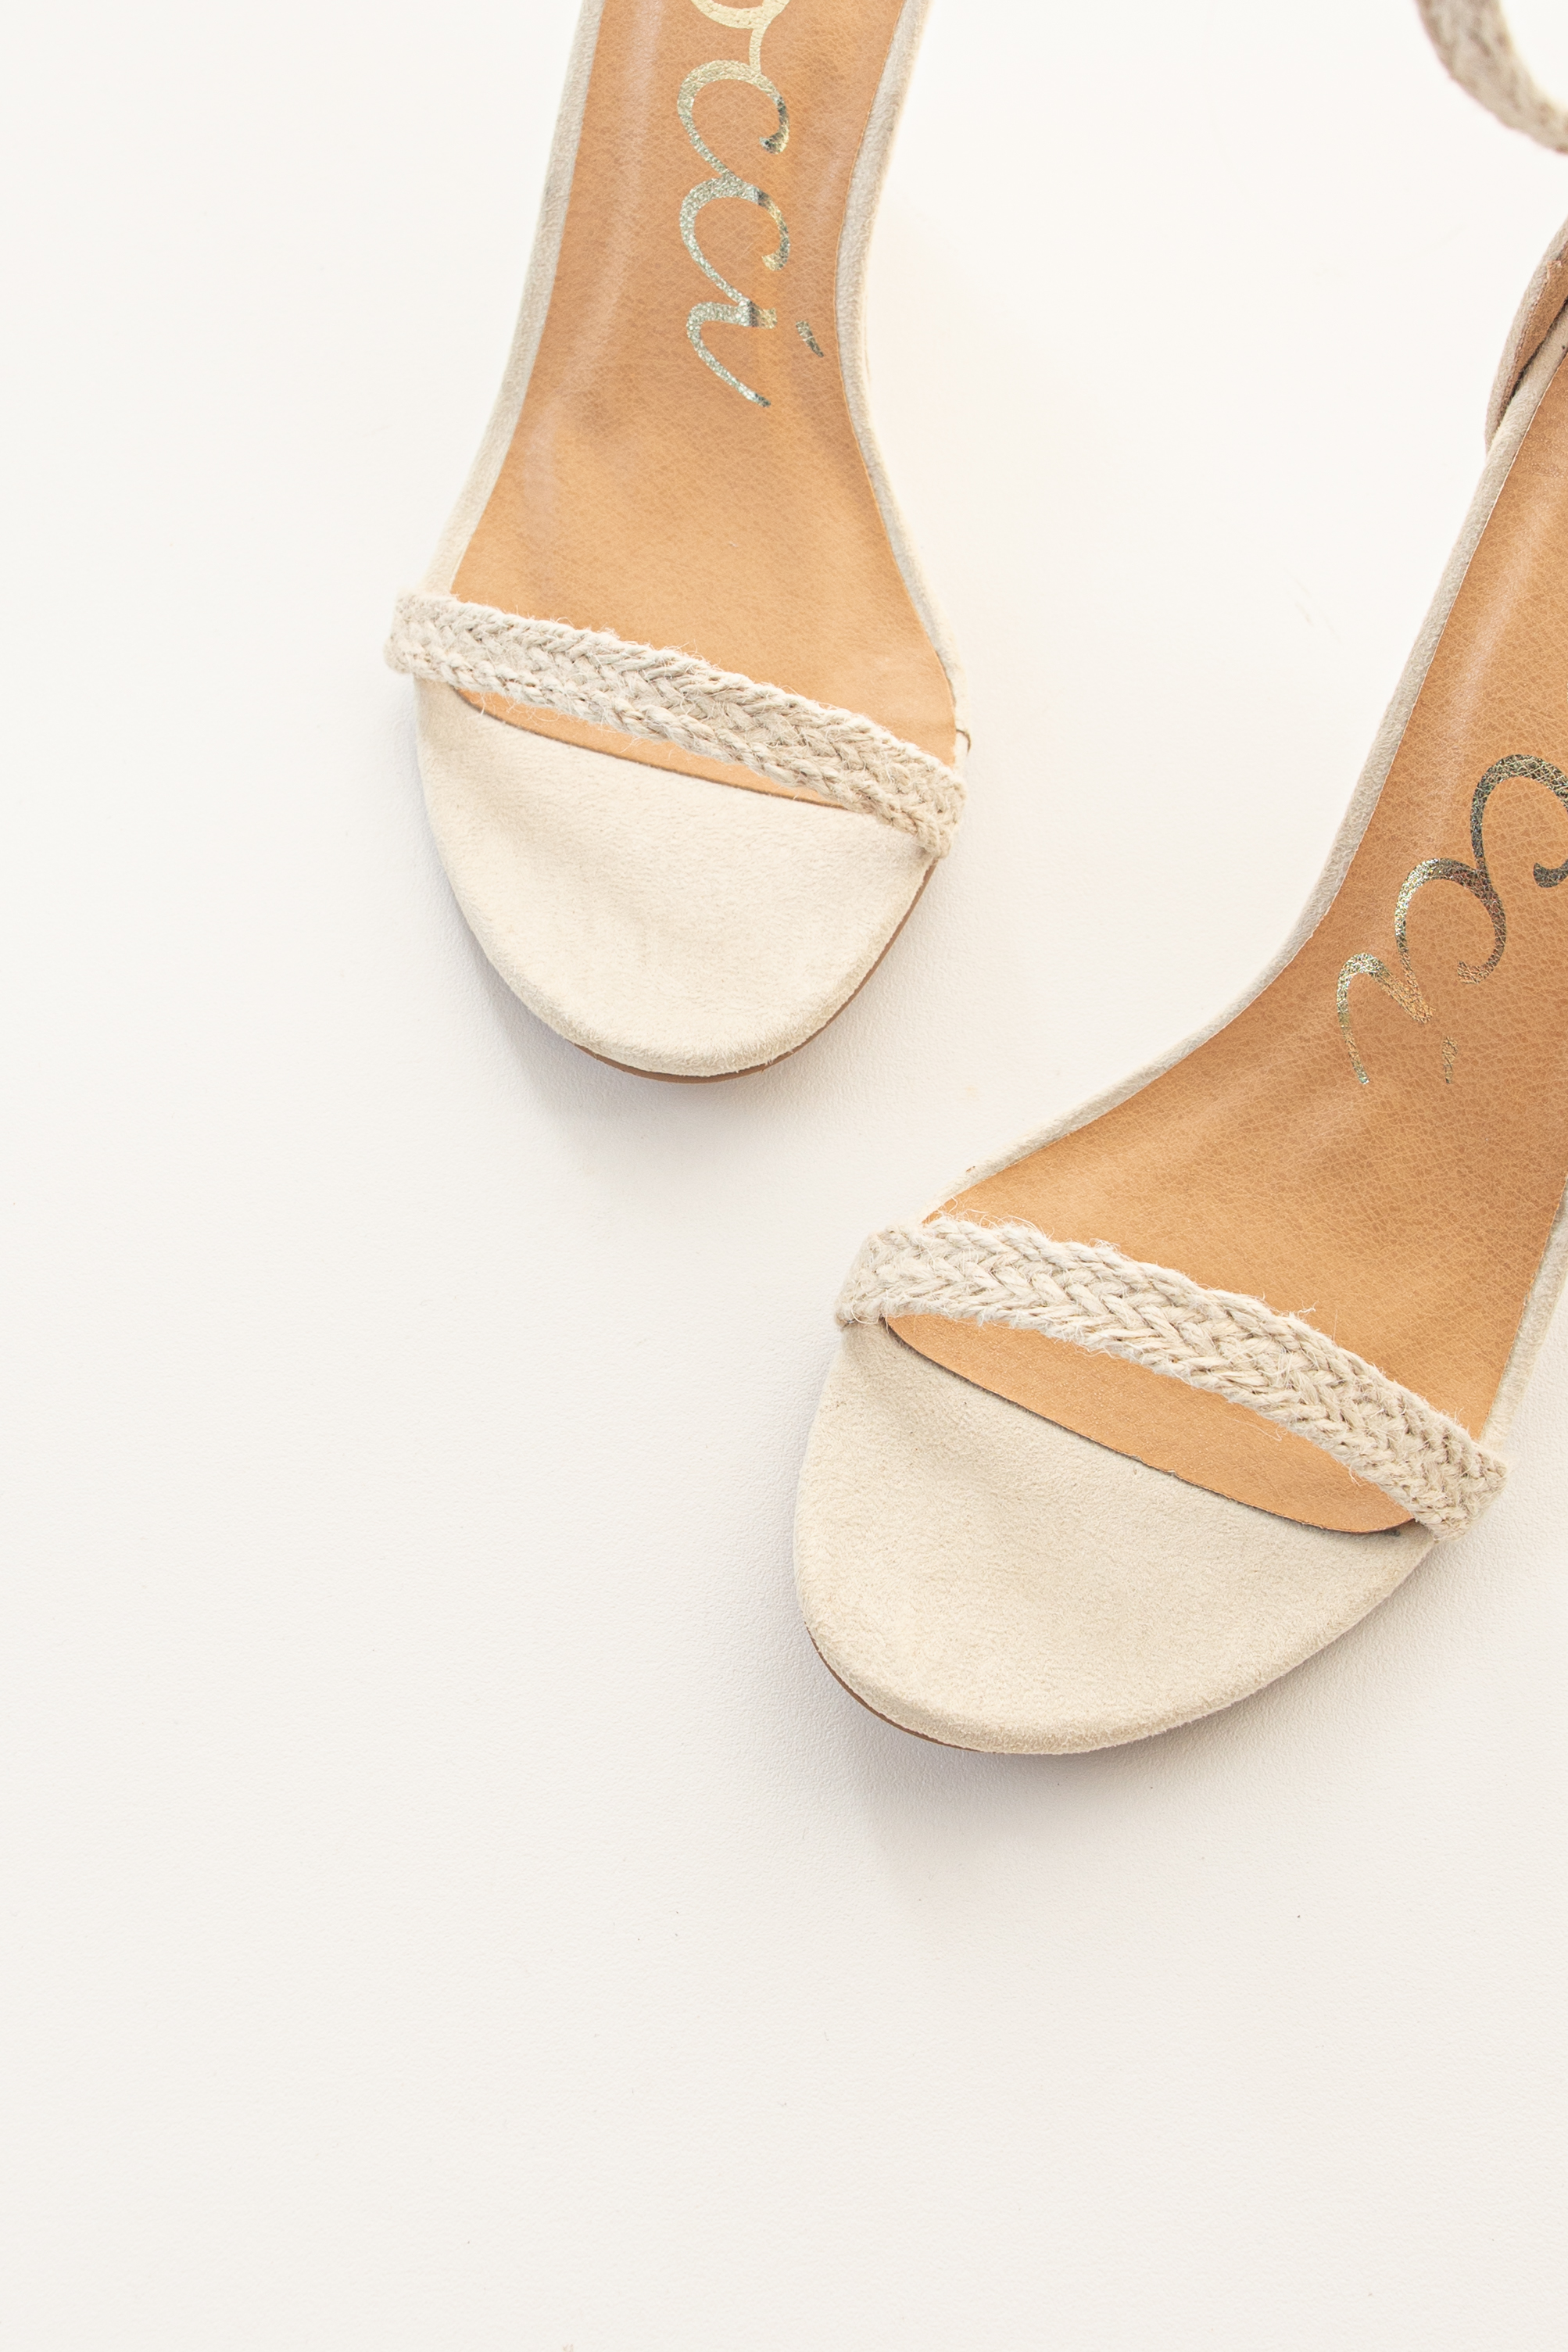 Ivory Faux Suede Wedge Sandals with Adjustable Dual Strap